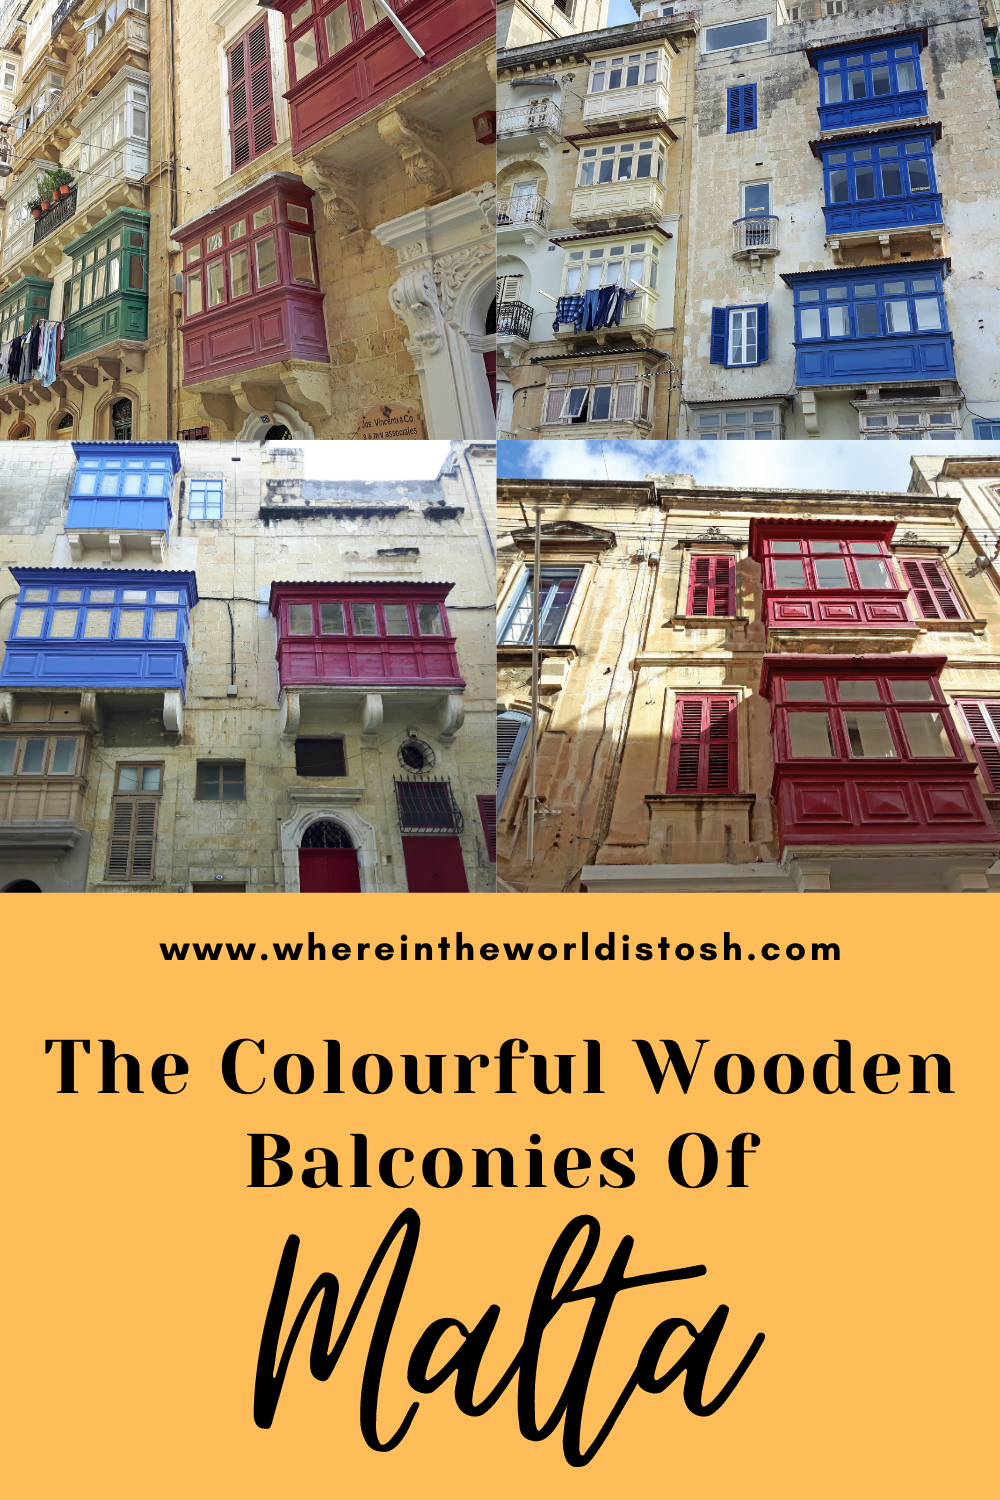 Colourful Balconies of Malta